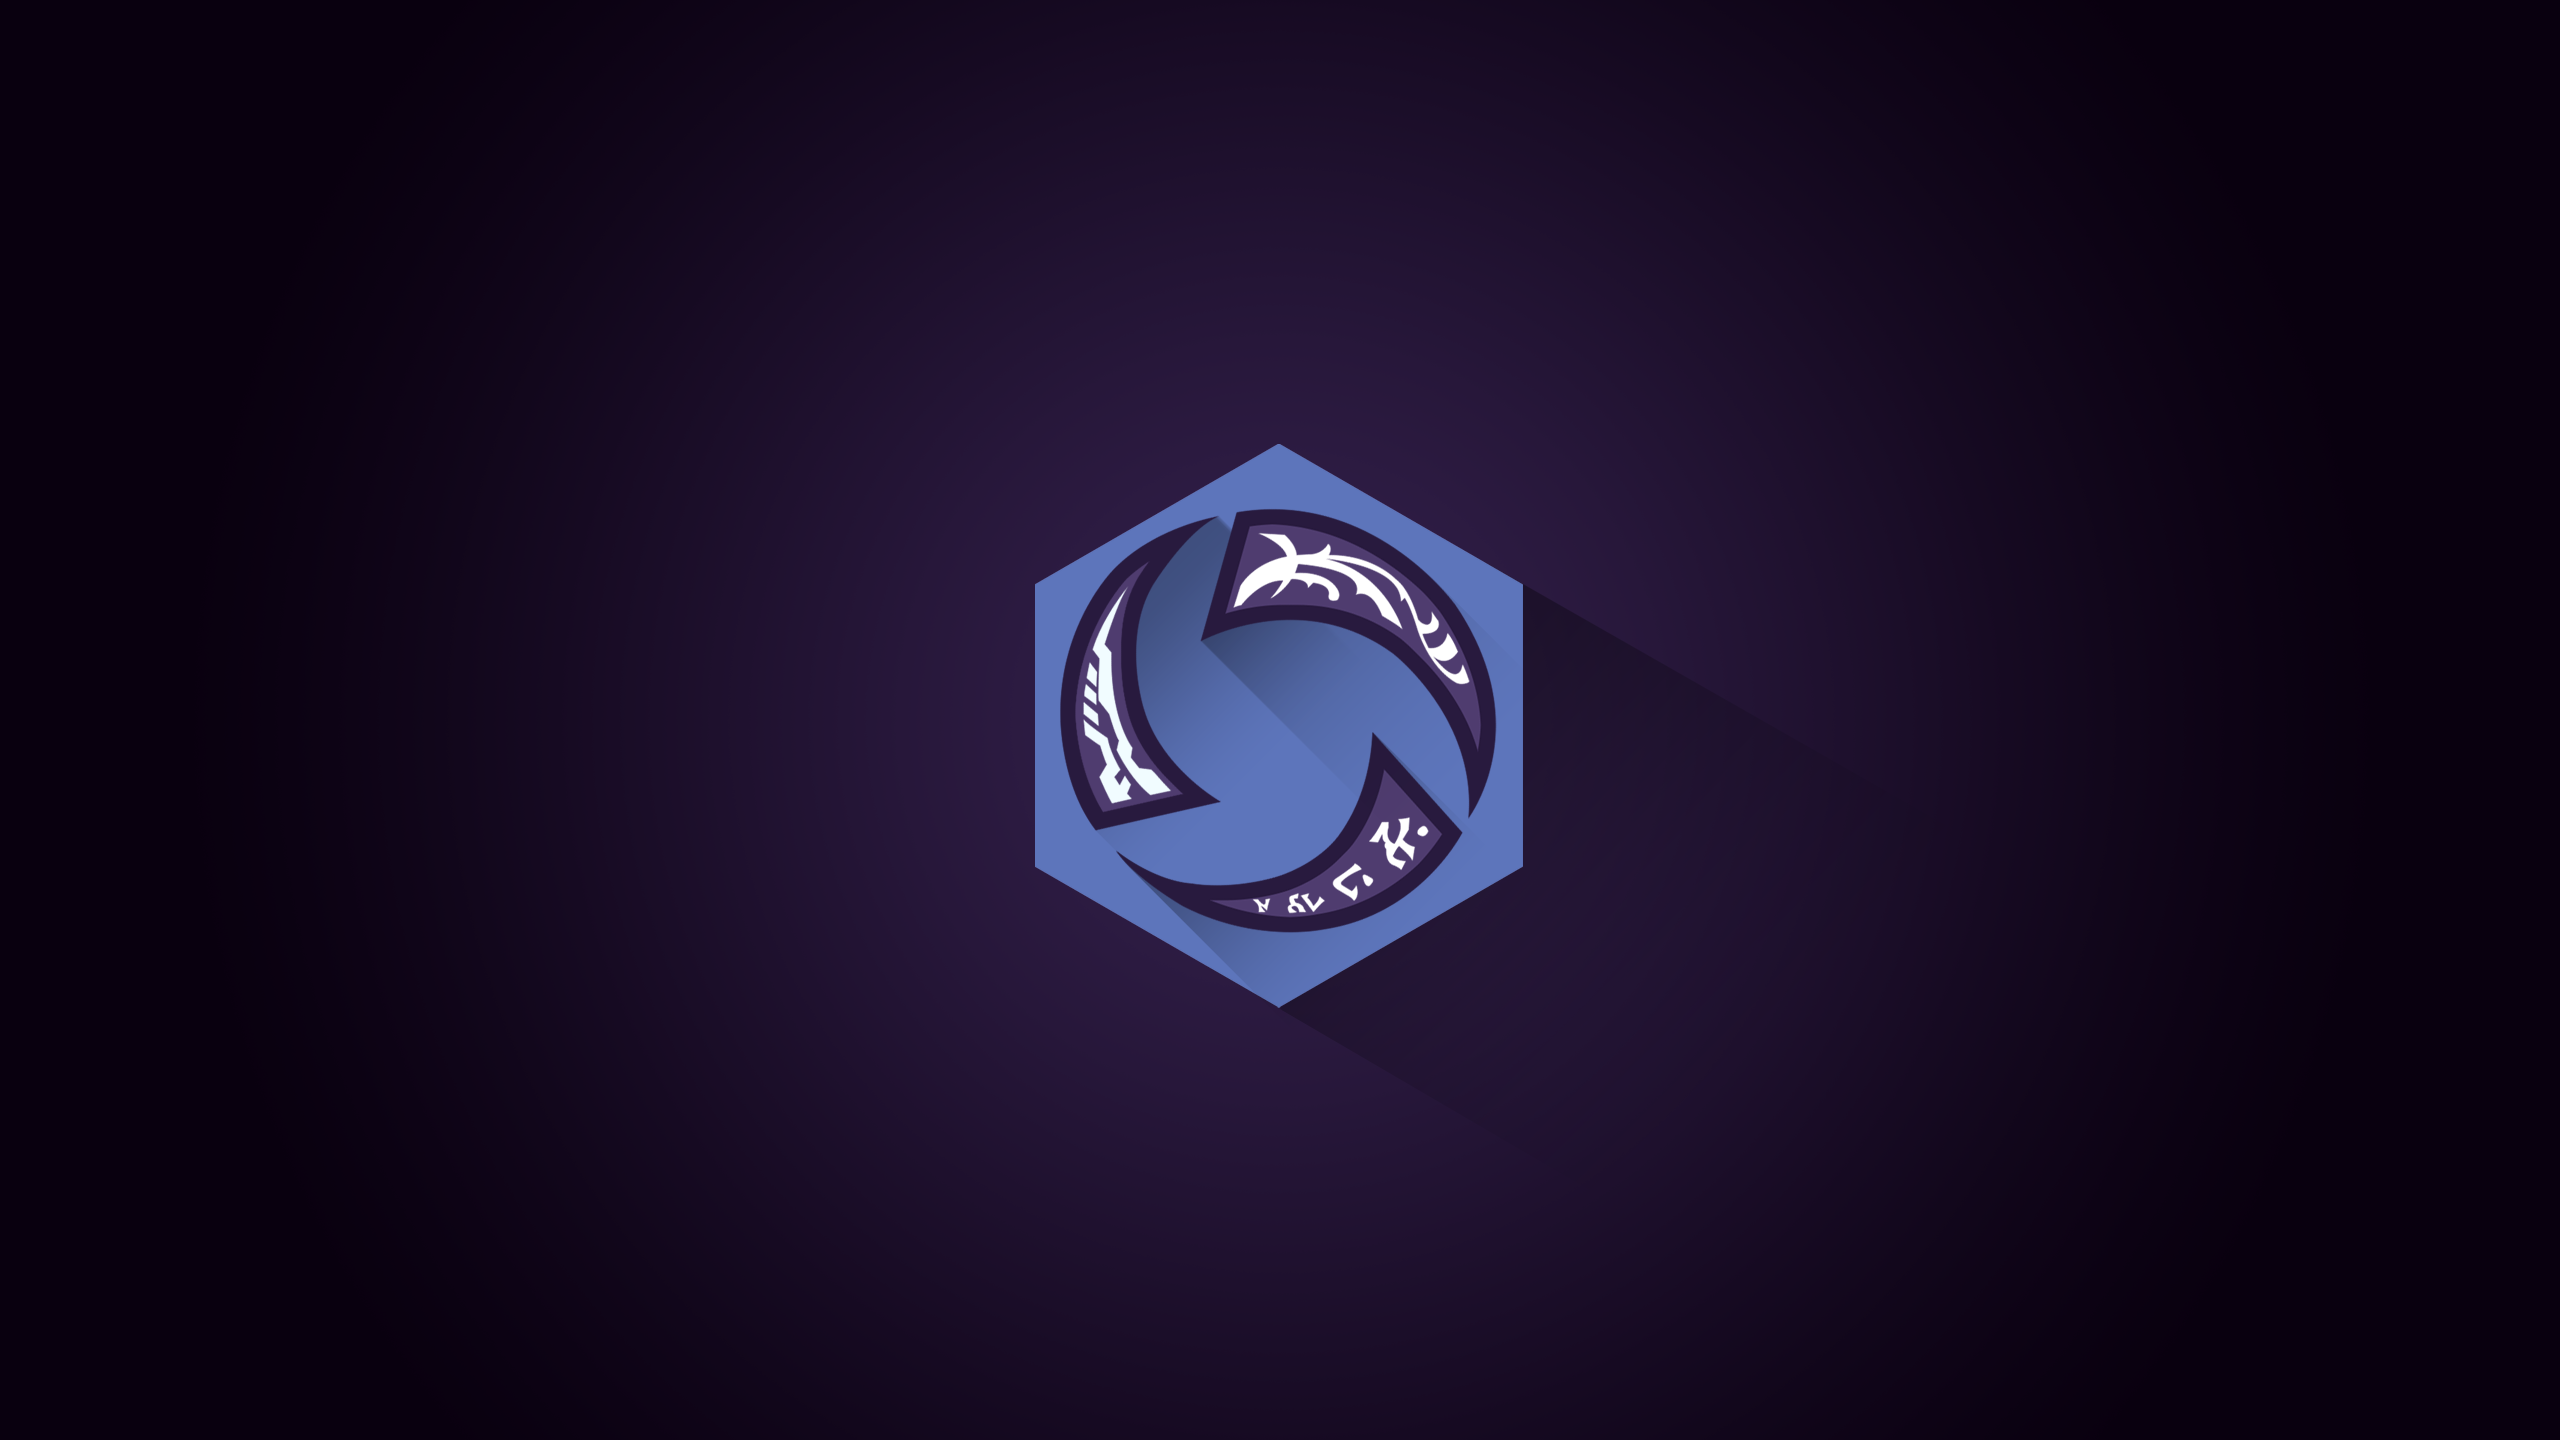 Heroes of the Storm minimal wallpaper I needed a wallpaper so I 2560x1440